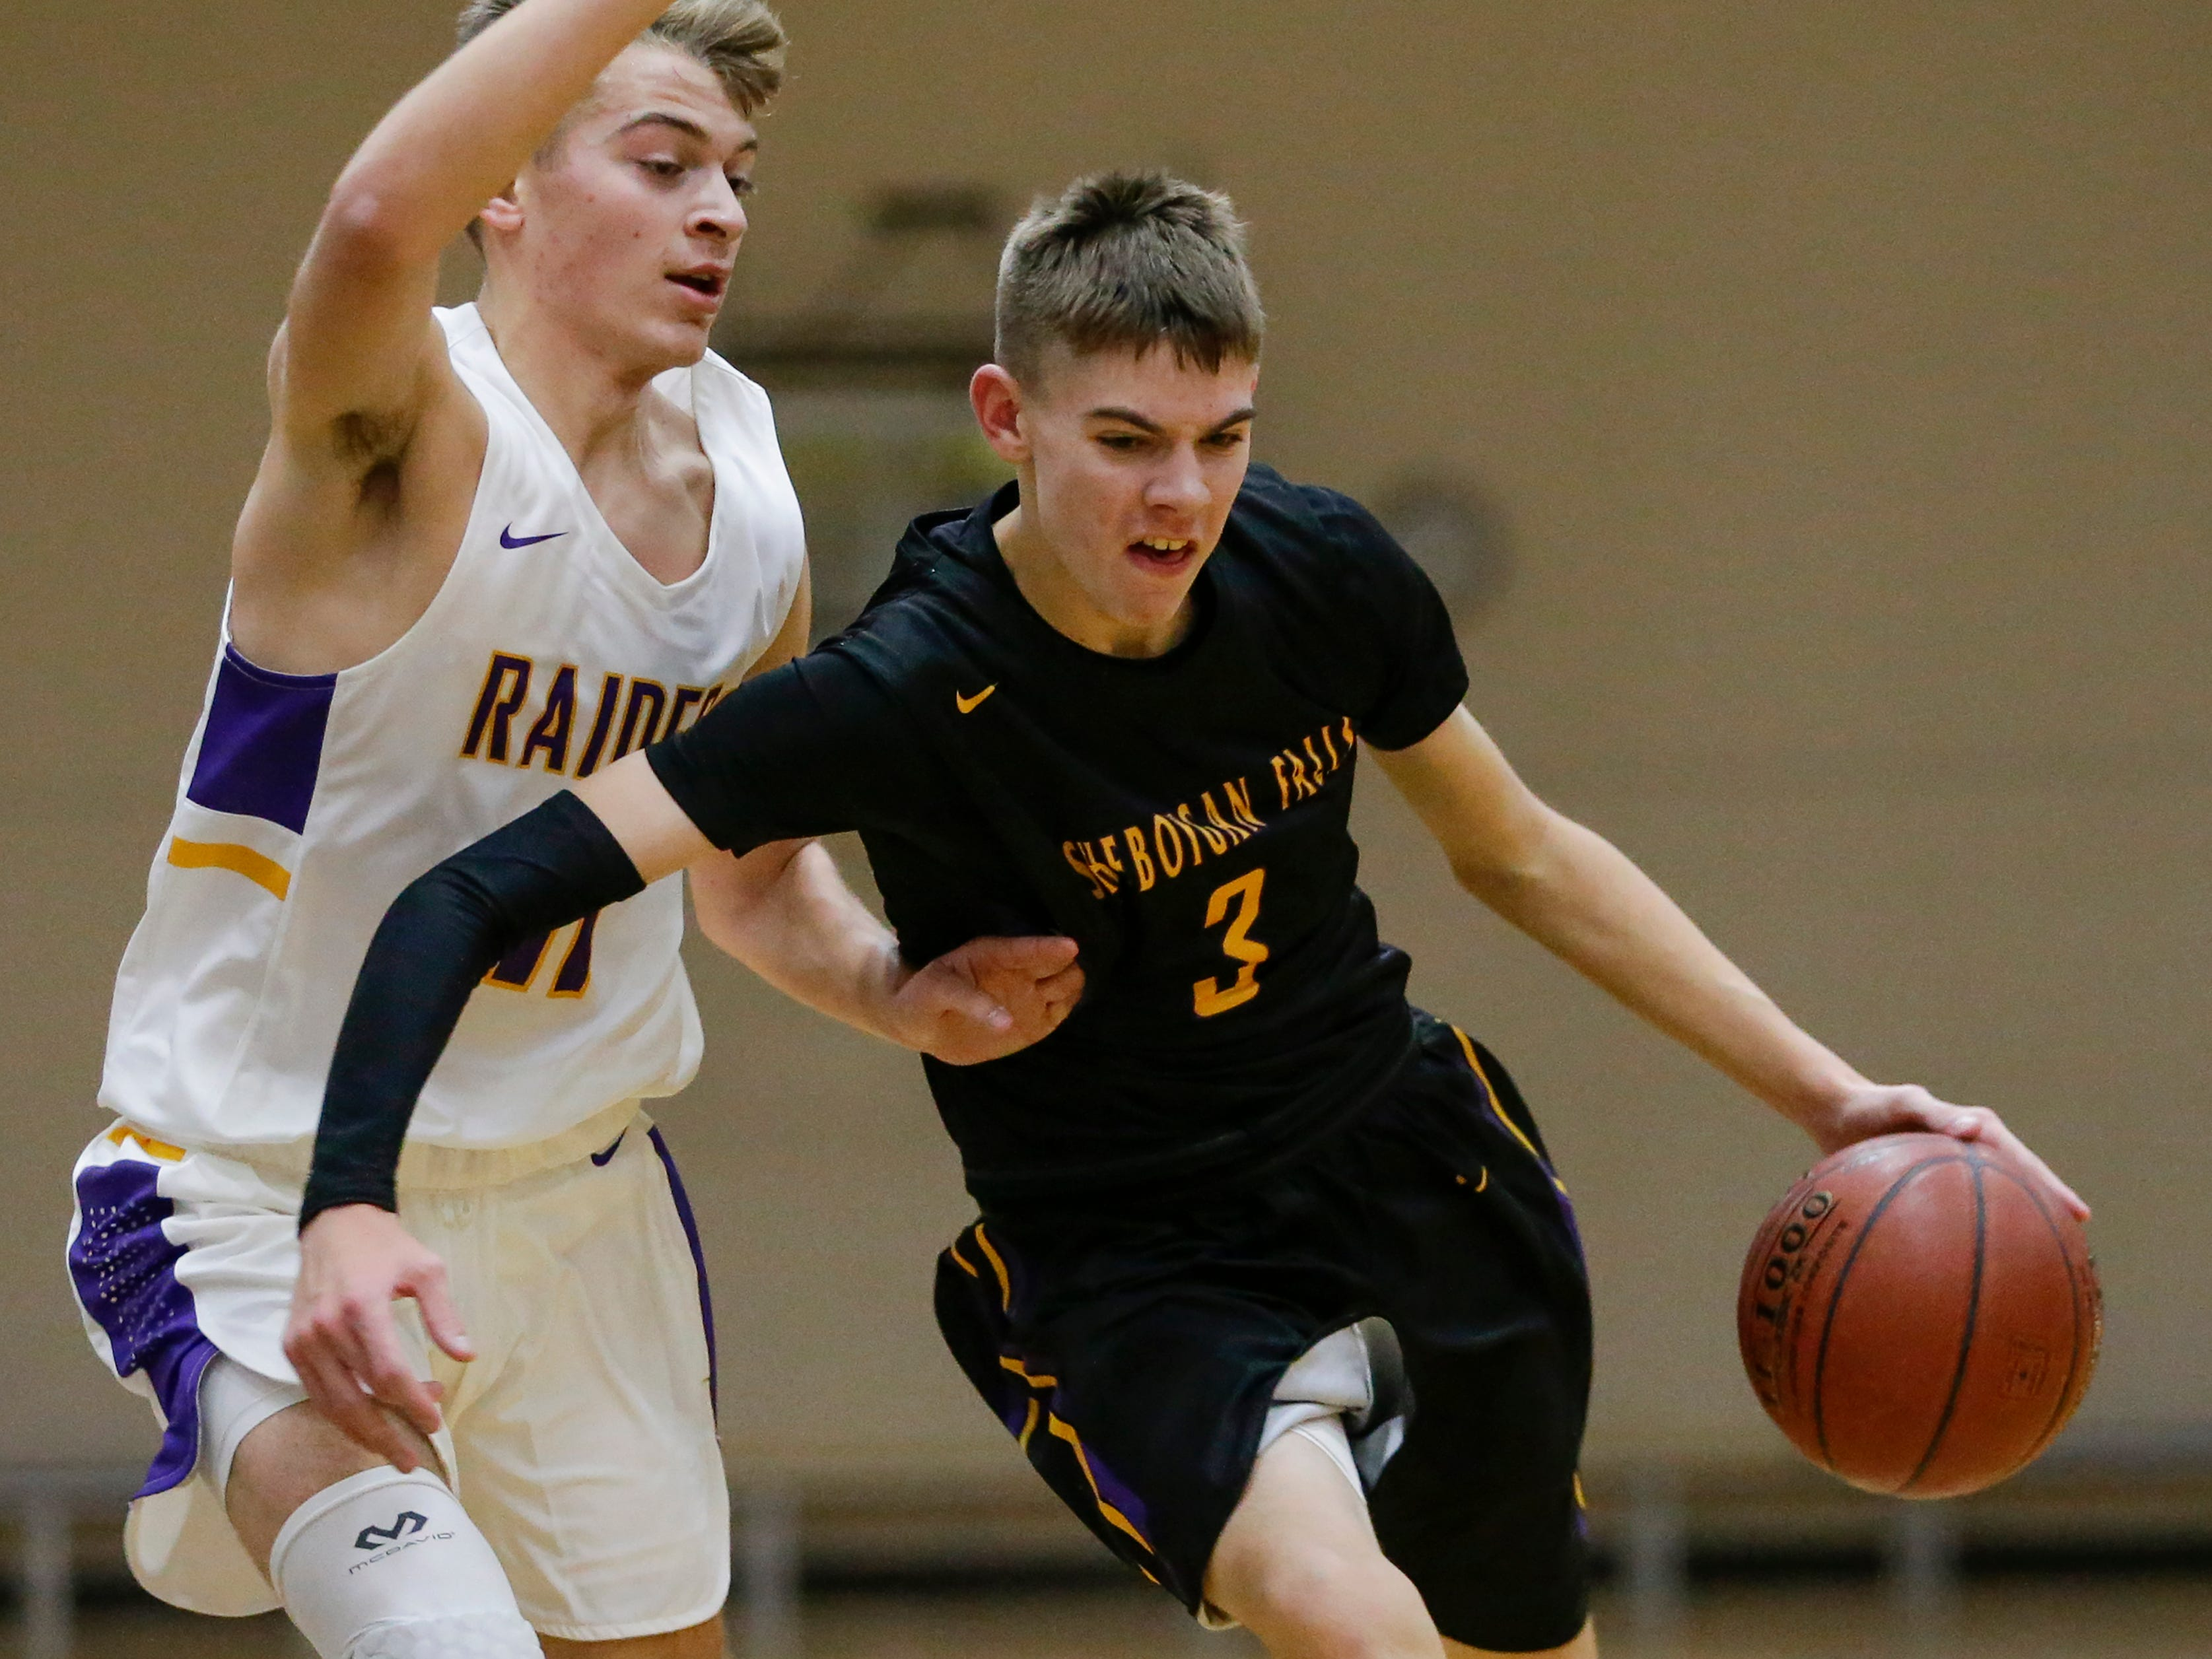 Sheboygan Falls' Jamison Nickolai drives to the basket against Two Rivers' Alexander Klein during an Eastern Wisconsin Conference game at Two Rivers High School Tuesday, December 4, 2018, in Two Rivers, Wis. Joshua Clark/USA TODAY NETWORK-Wisconsin